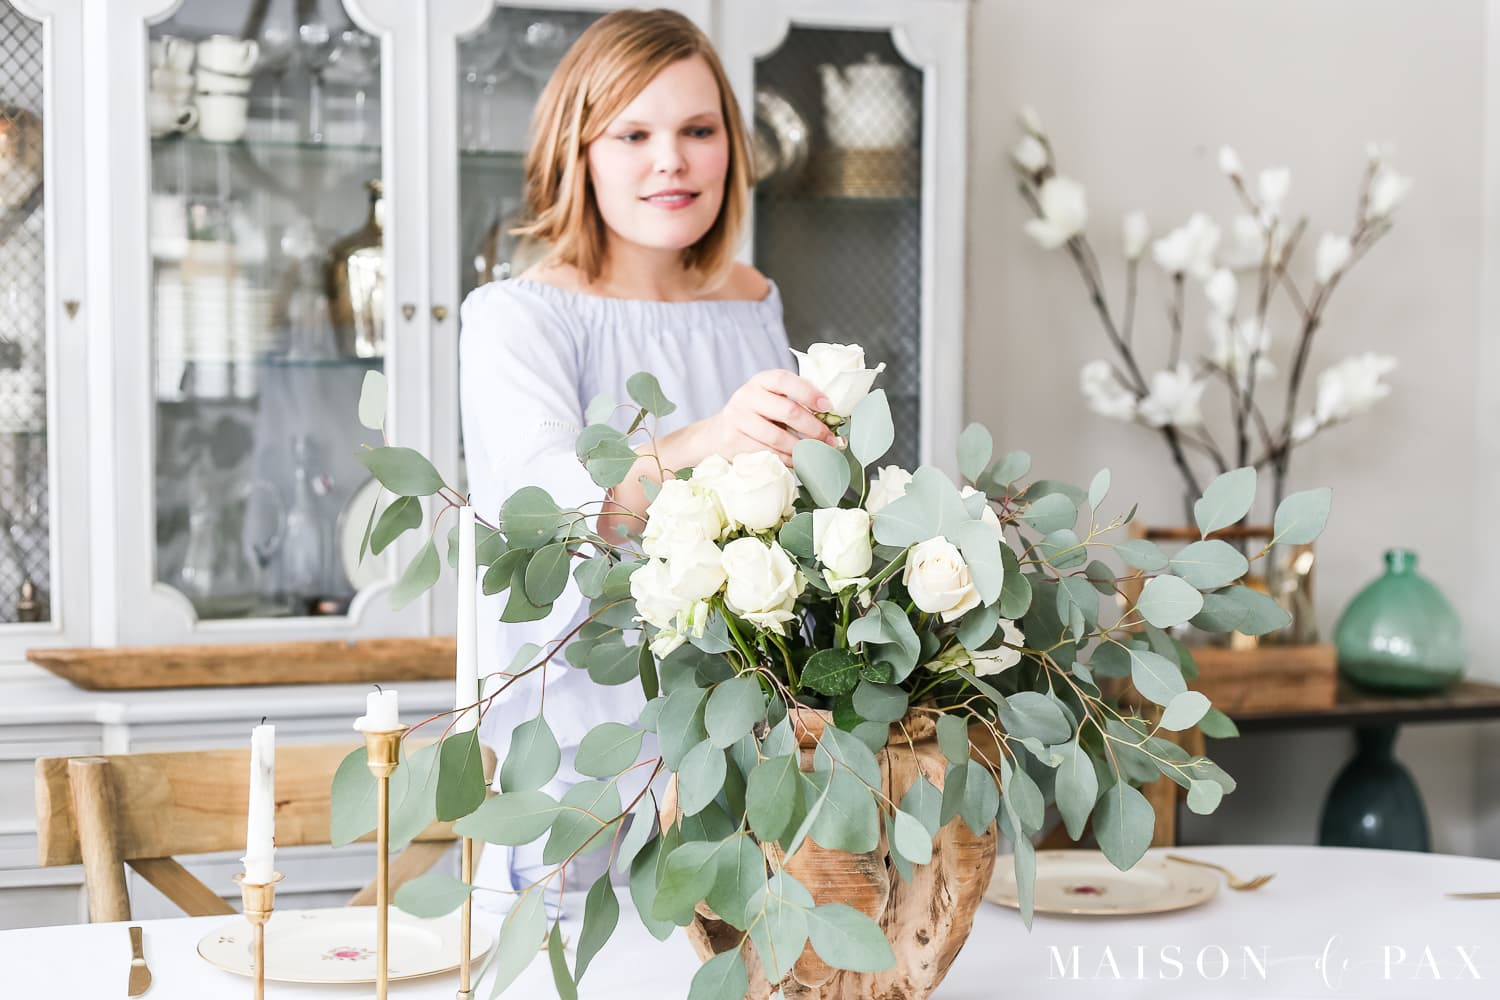 DIY centerpiece with white roses and eucalyptus